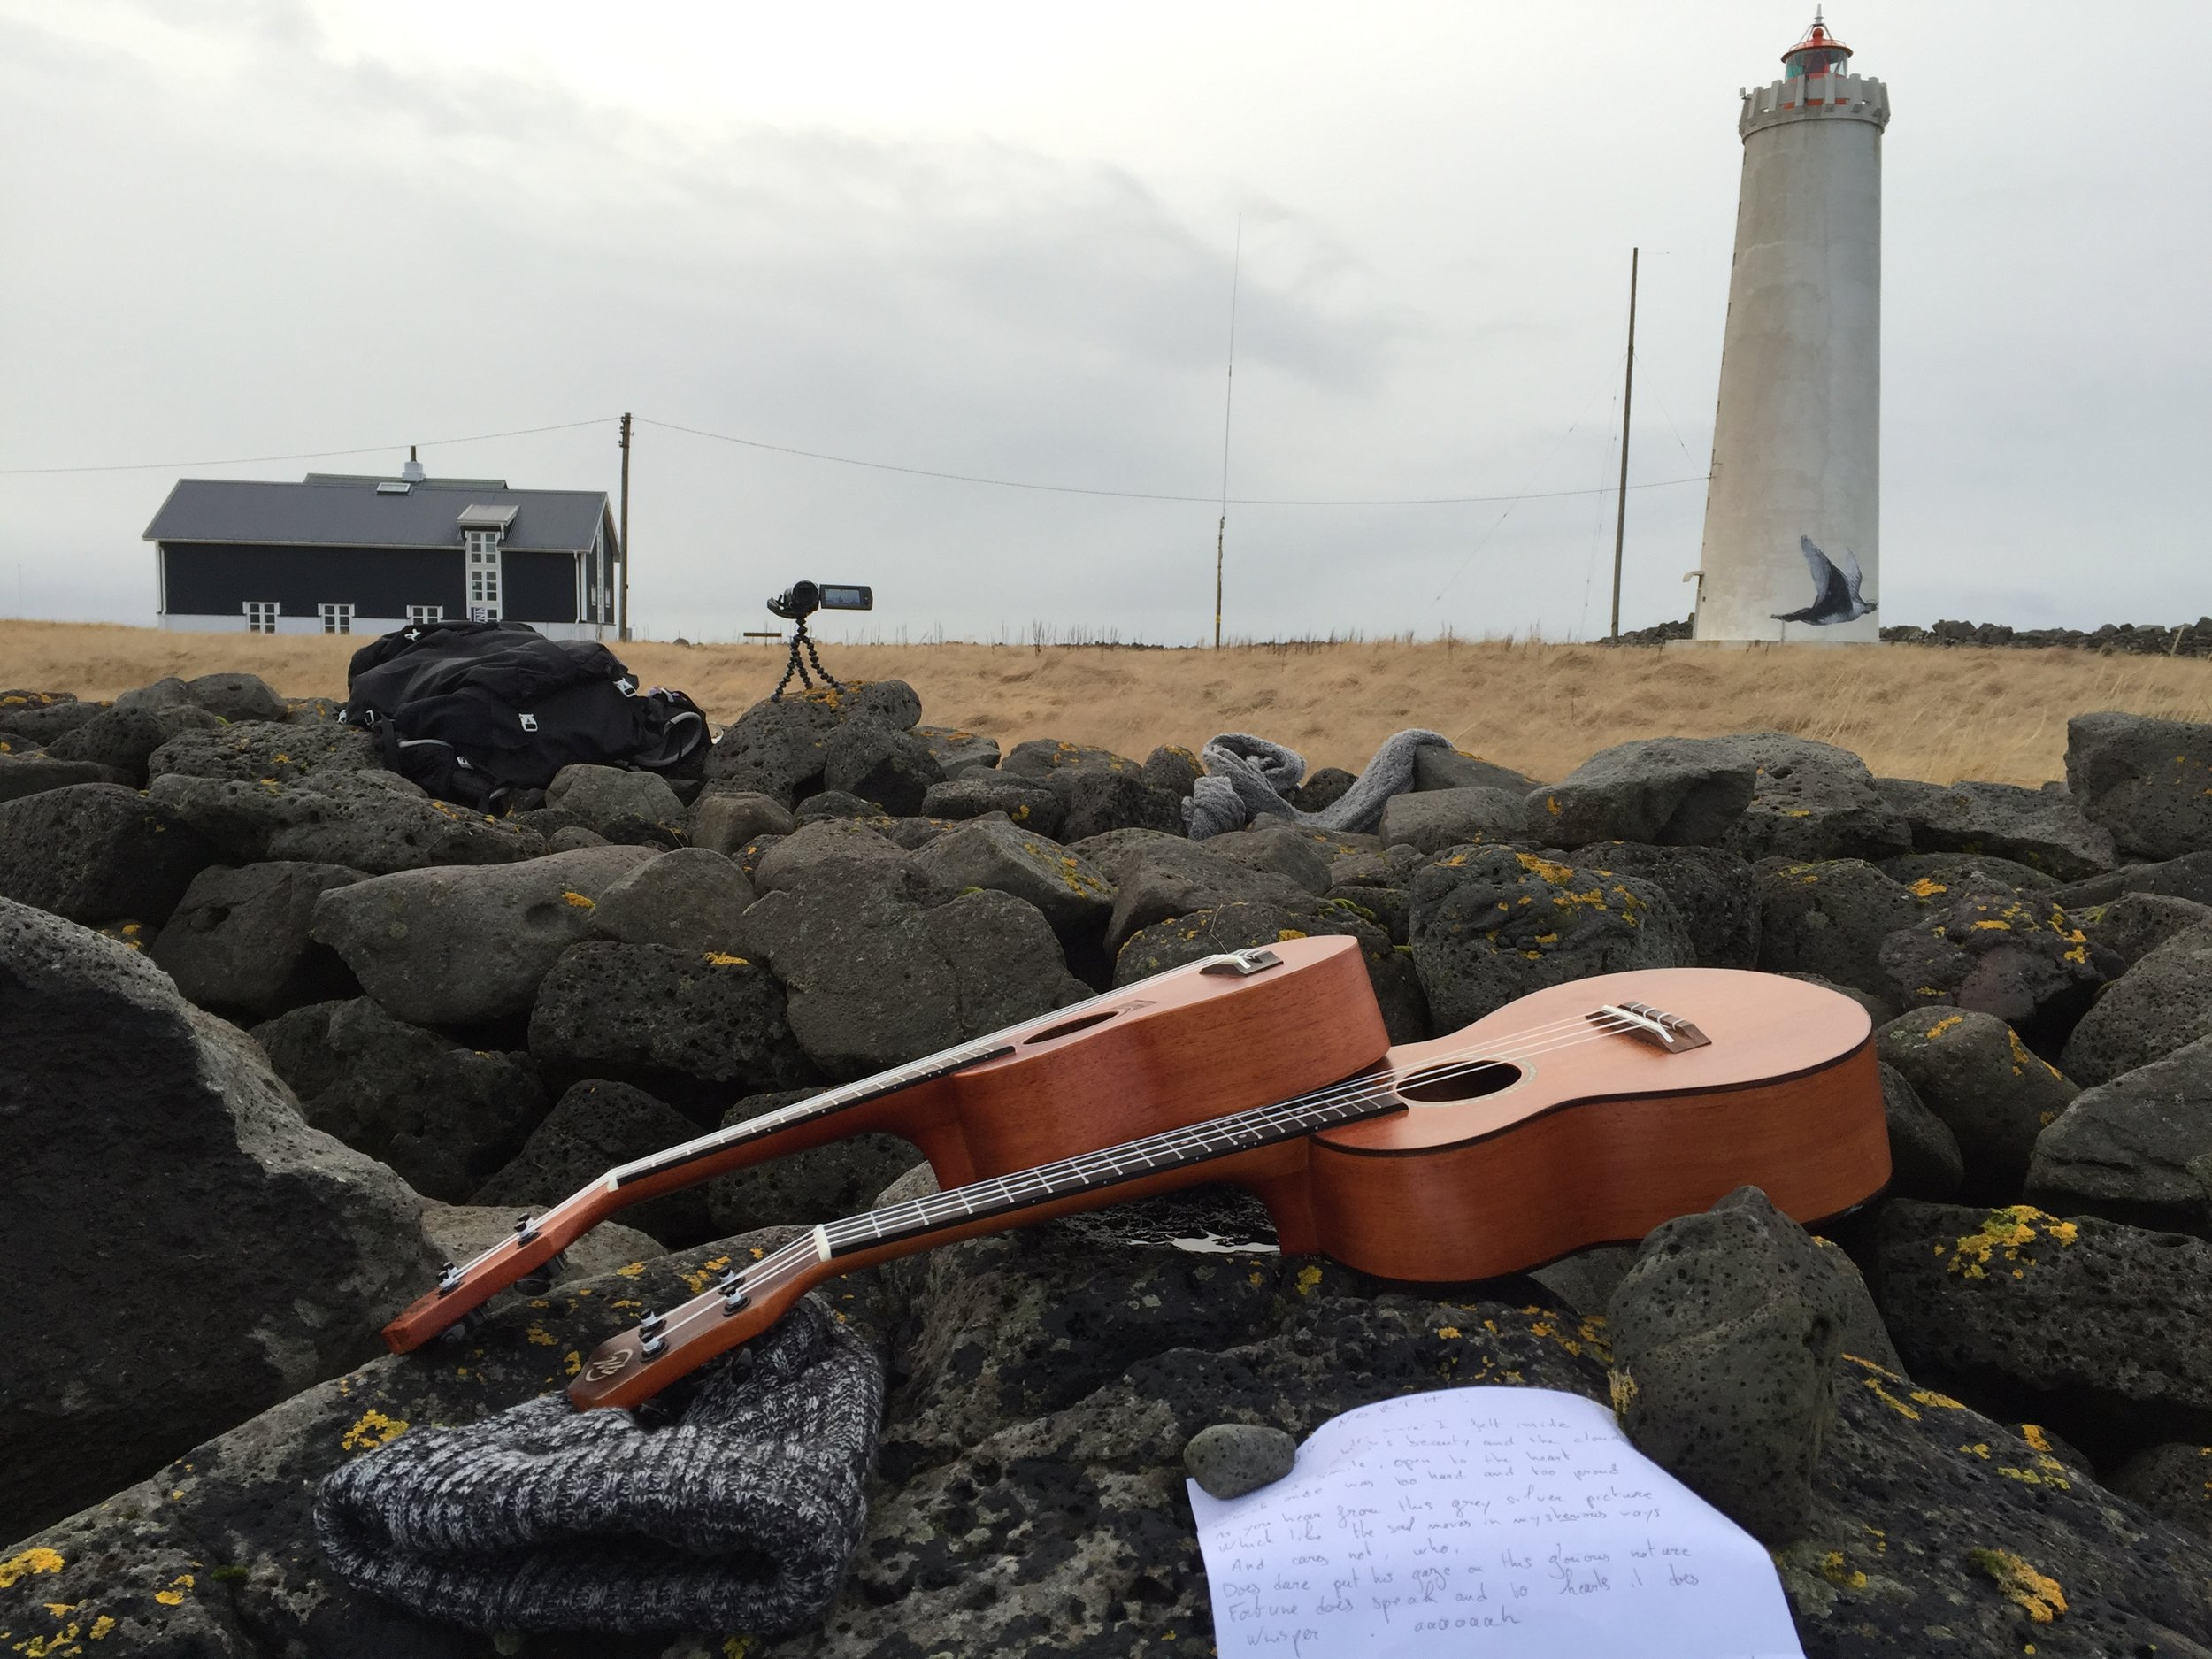 The other side of the Cam; my view as I was singing and dancing on the Icelandic shore